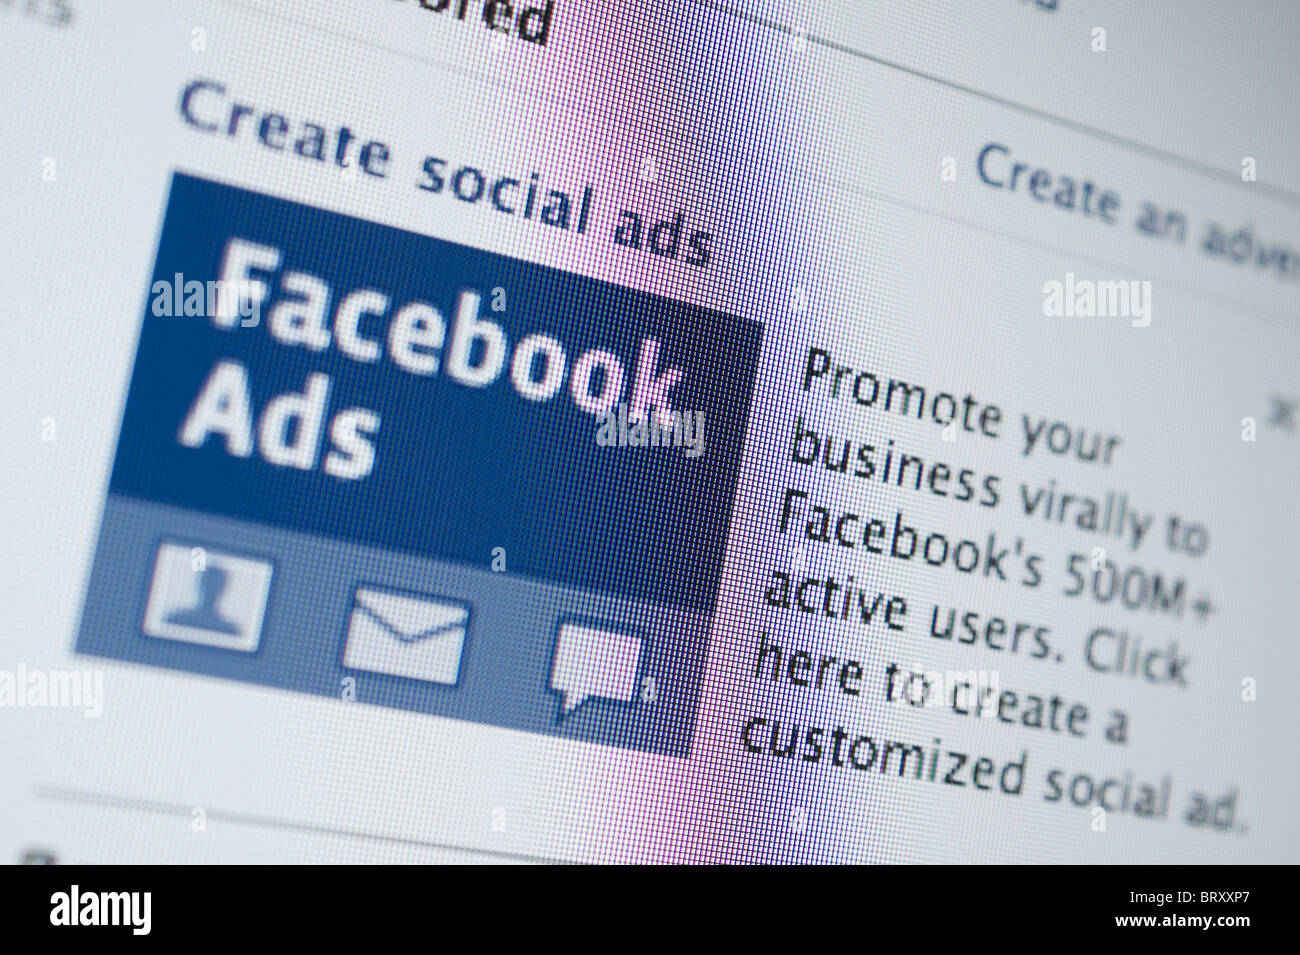 Computer screen closeup photograph - Facebook promoting on-line advertising for businesses - Stock Image